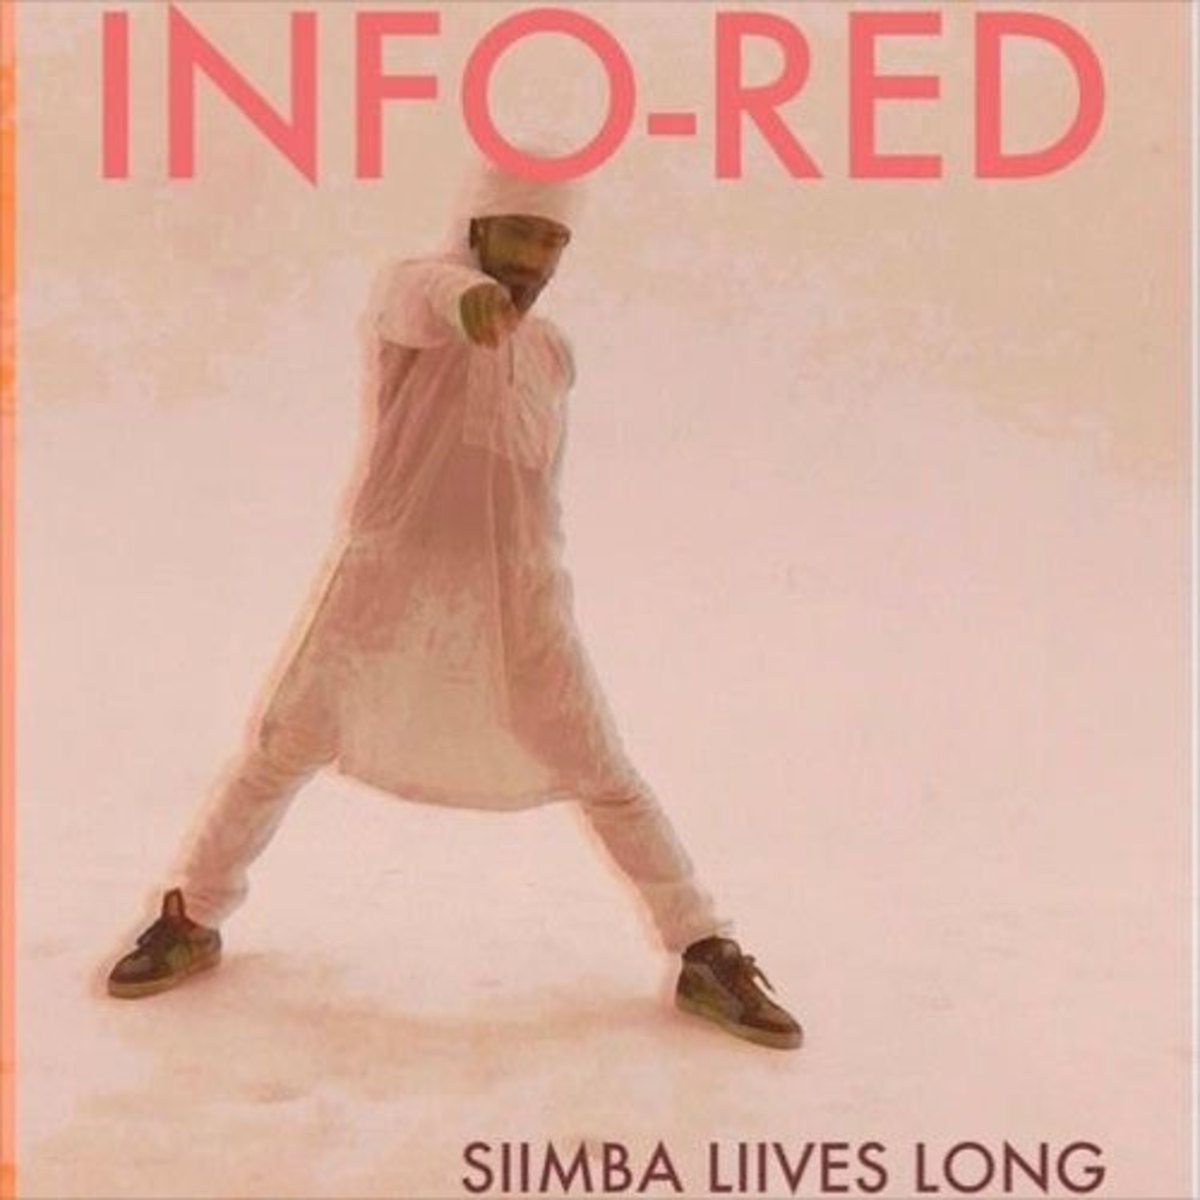 siimba-lives-long-info-red.jpg